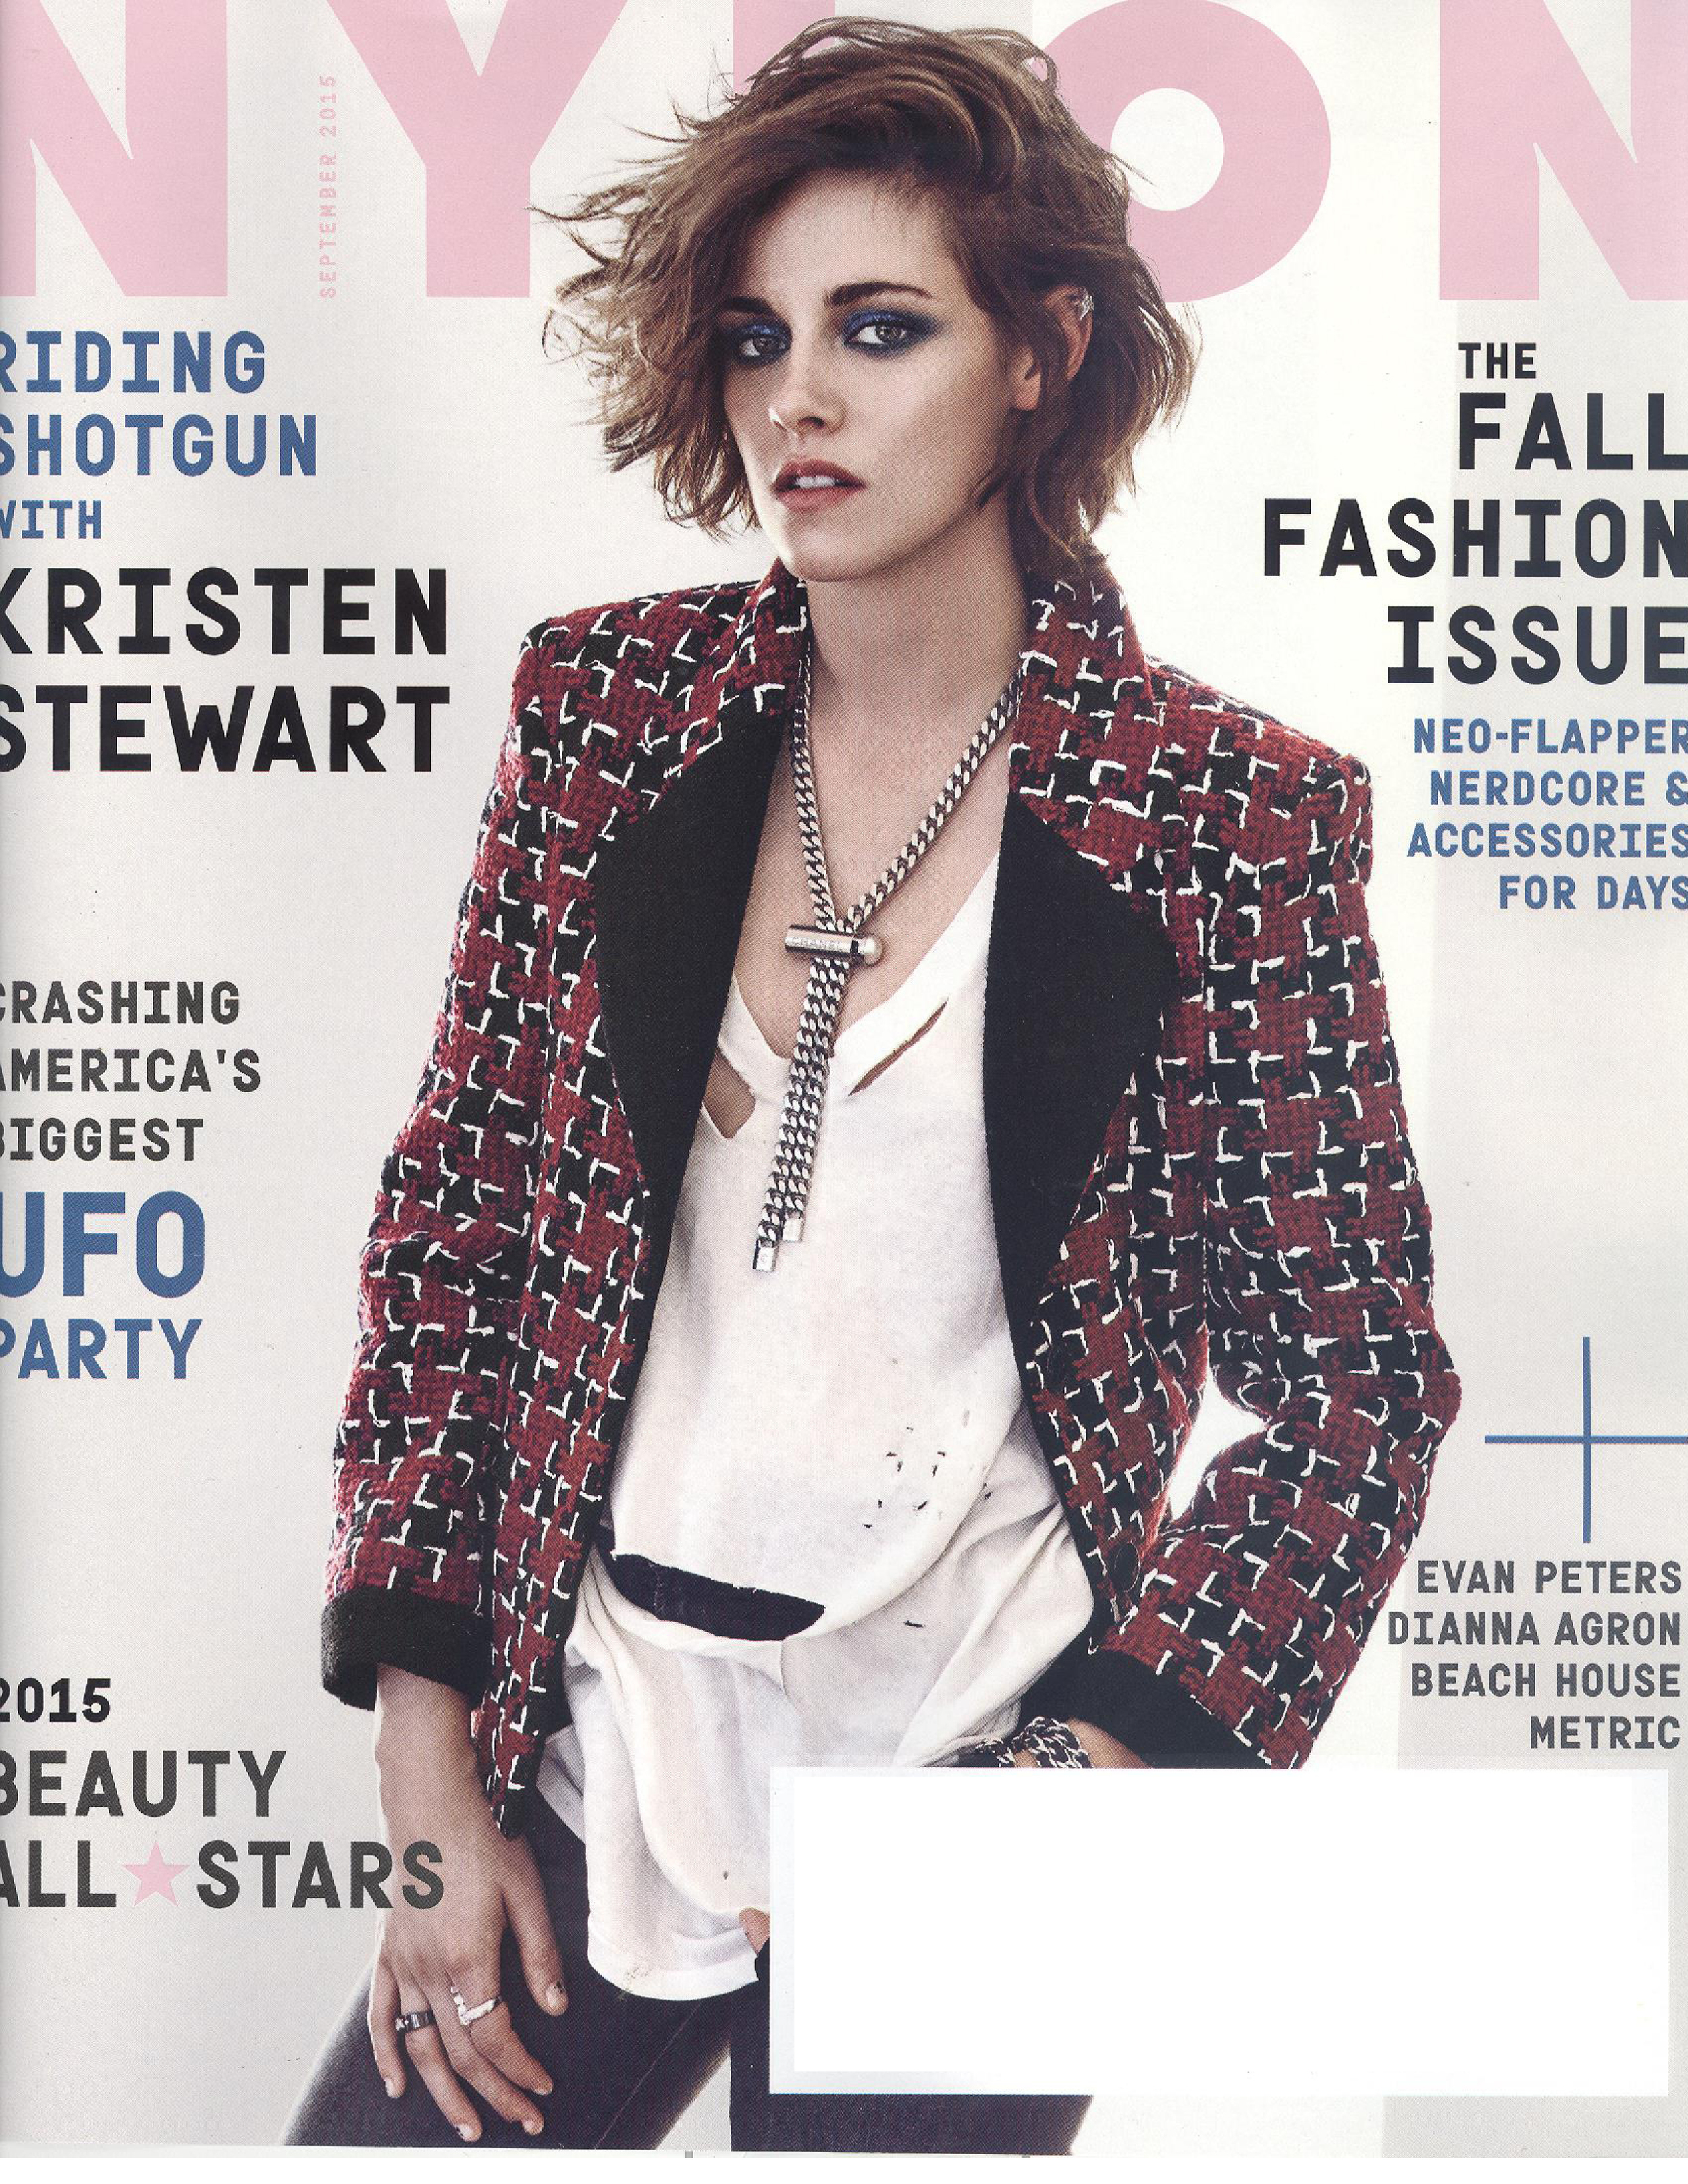 Nylon_Cover_Sept2015-2.jpg